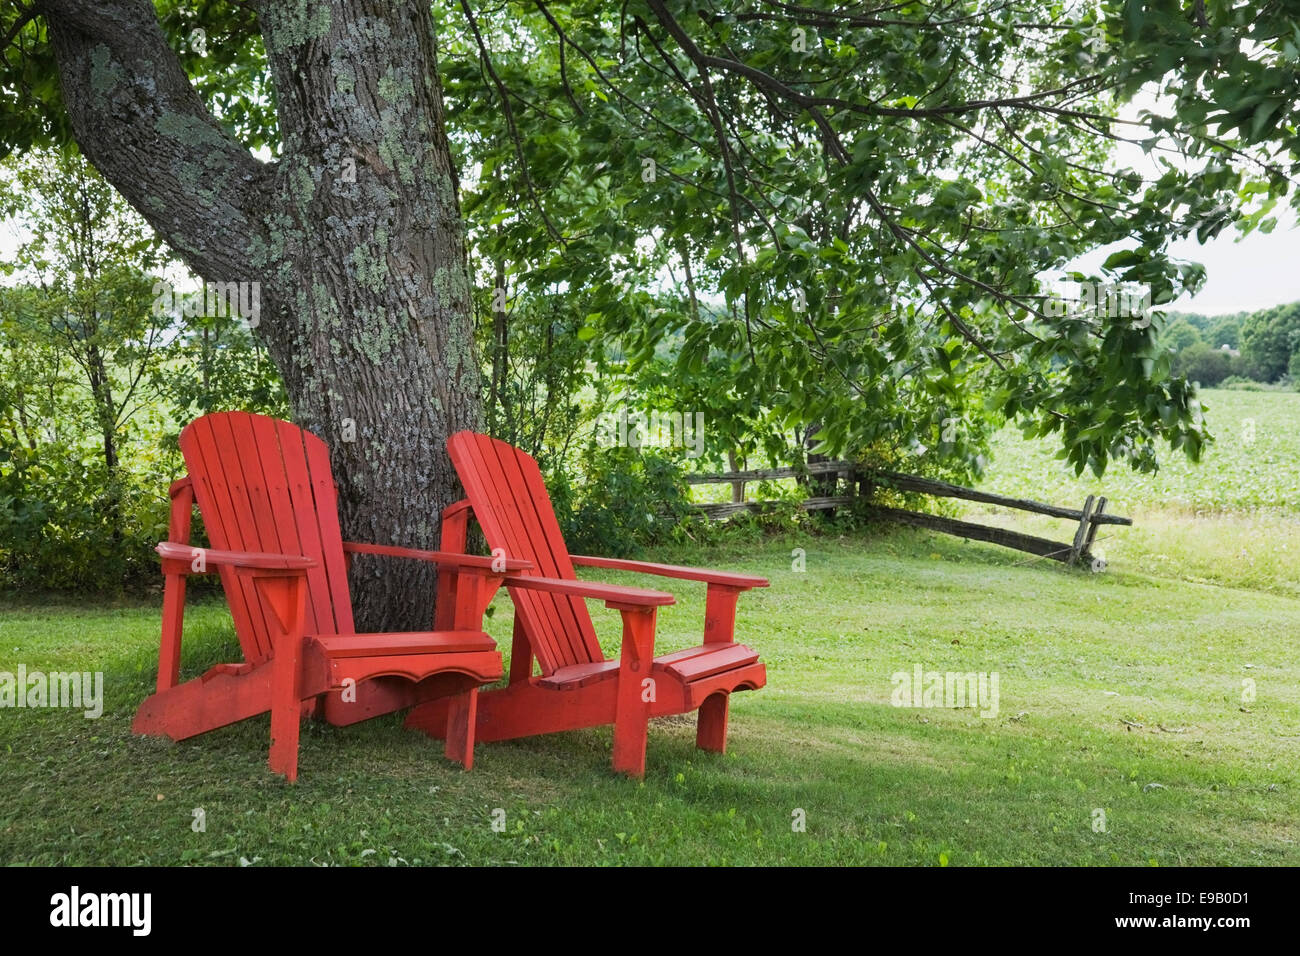 stock photo two red wooden adirondack chairs under a tree in a residential backyard quebec canada